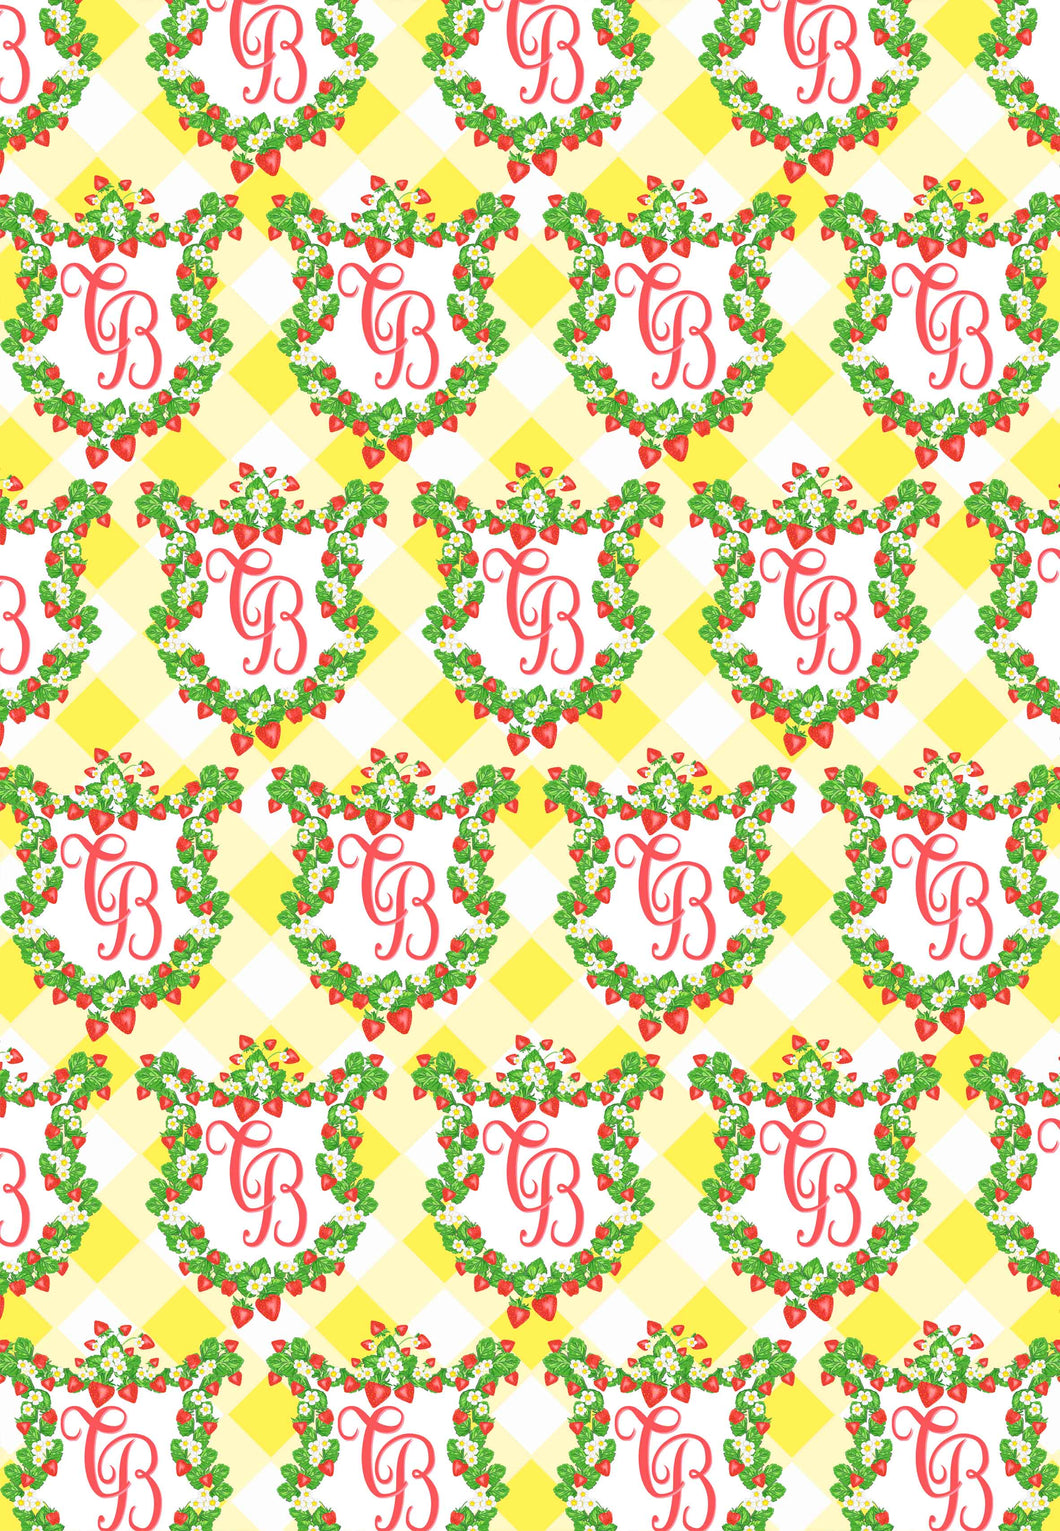 Strawberry Fields Crest Gift Wrap Sheets, Set of 5 Sheets